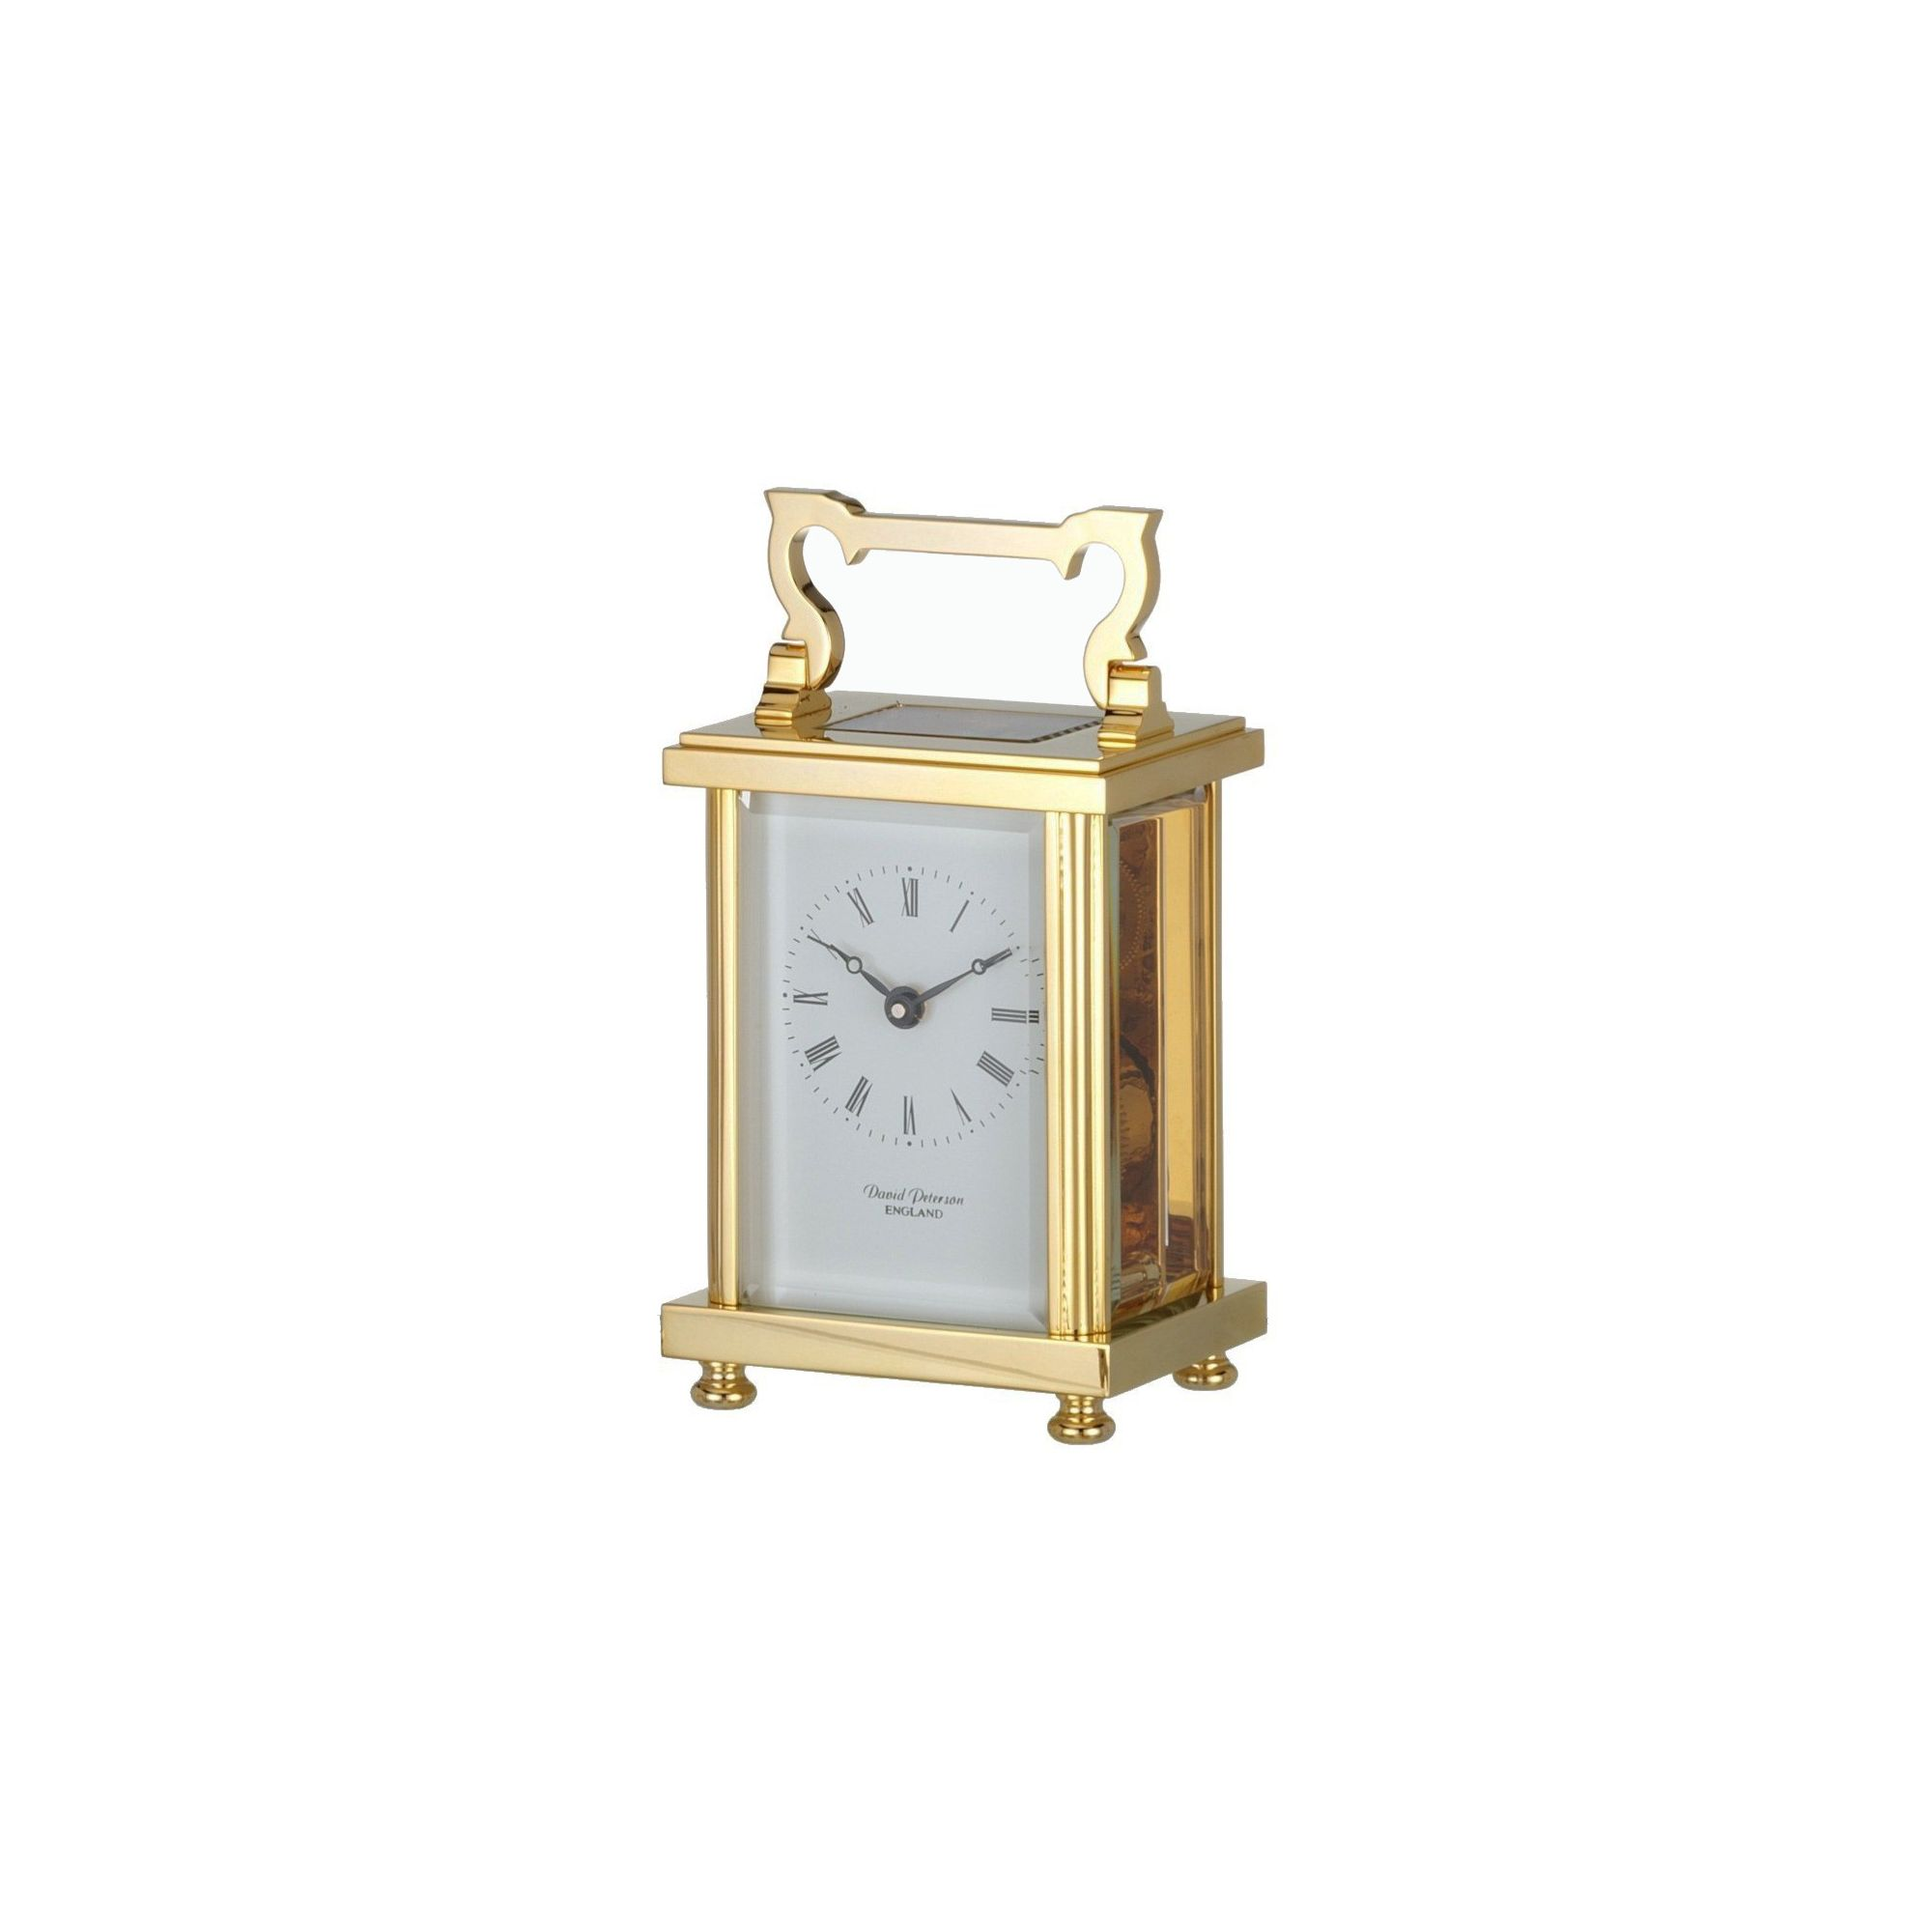 David Peterson Ltd 8 Day Heavy Flat Carriage Clock at Tesco Direct